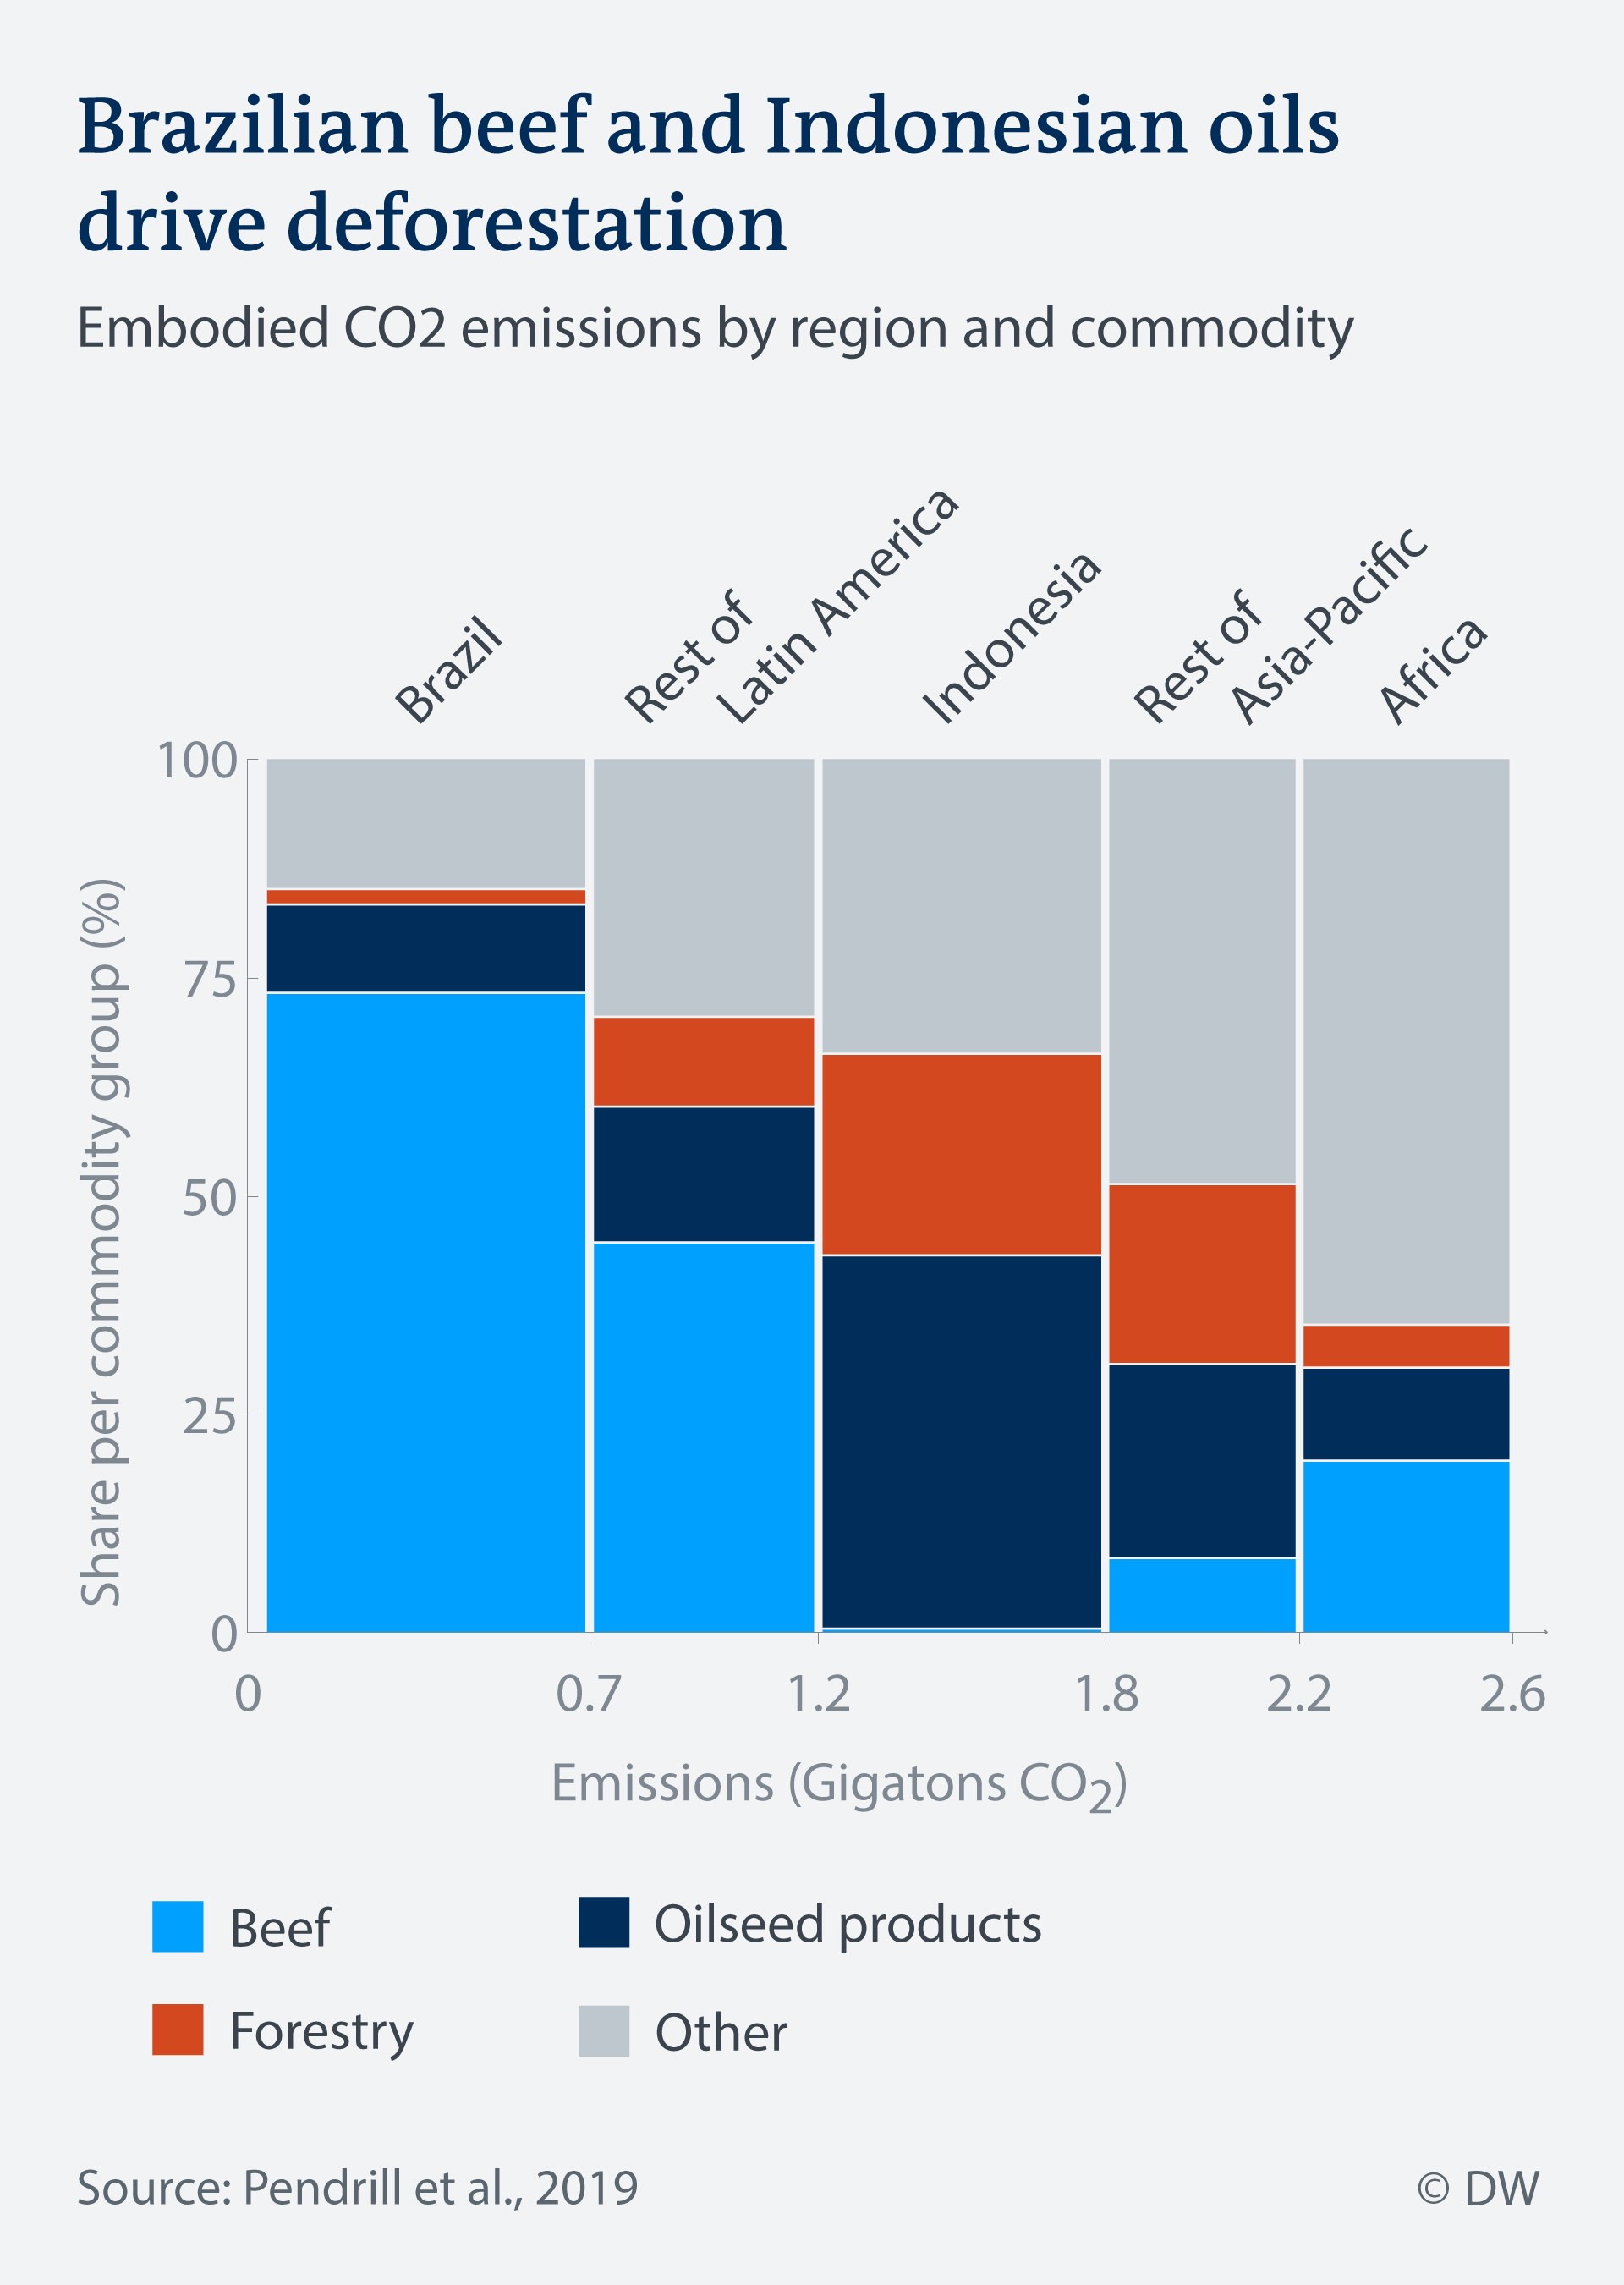 Data visualization: CO2 emissions from deforestation by commodity and region